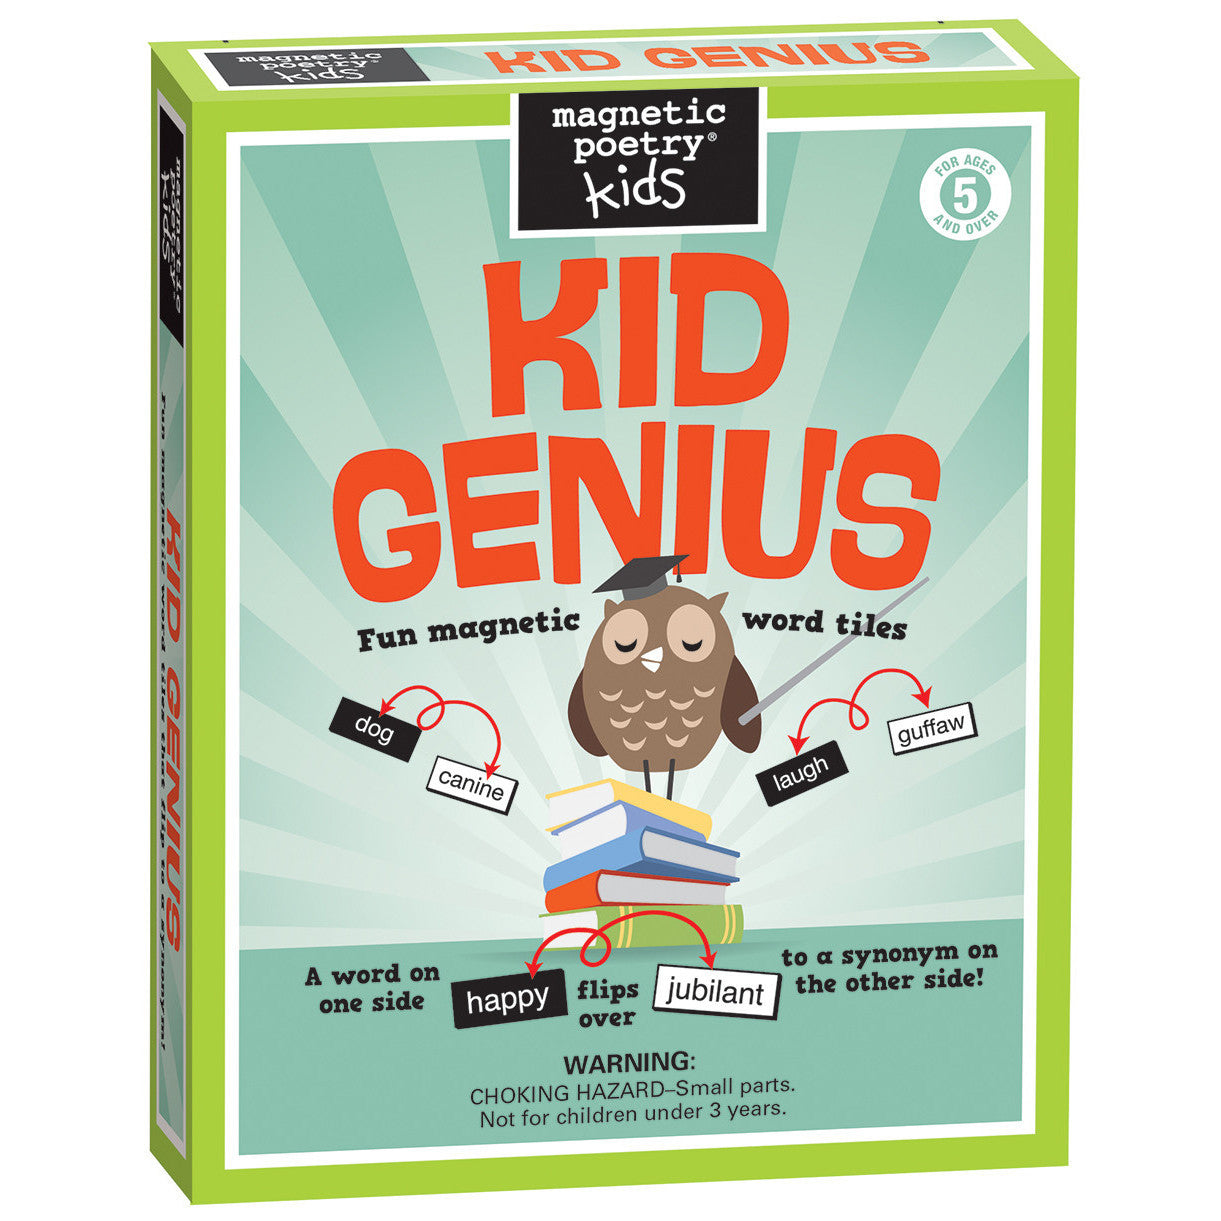 Magnetic Poetry Kids - Kid Genius